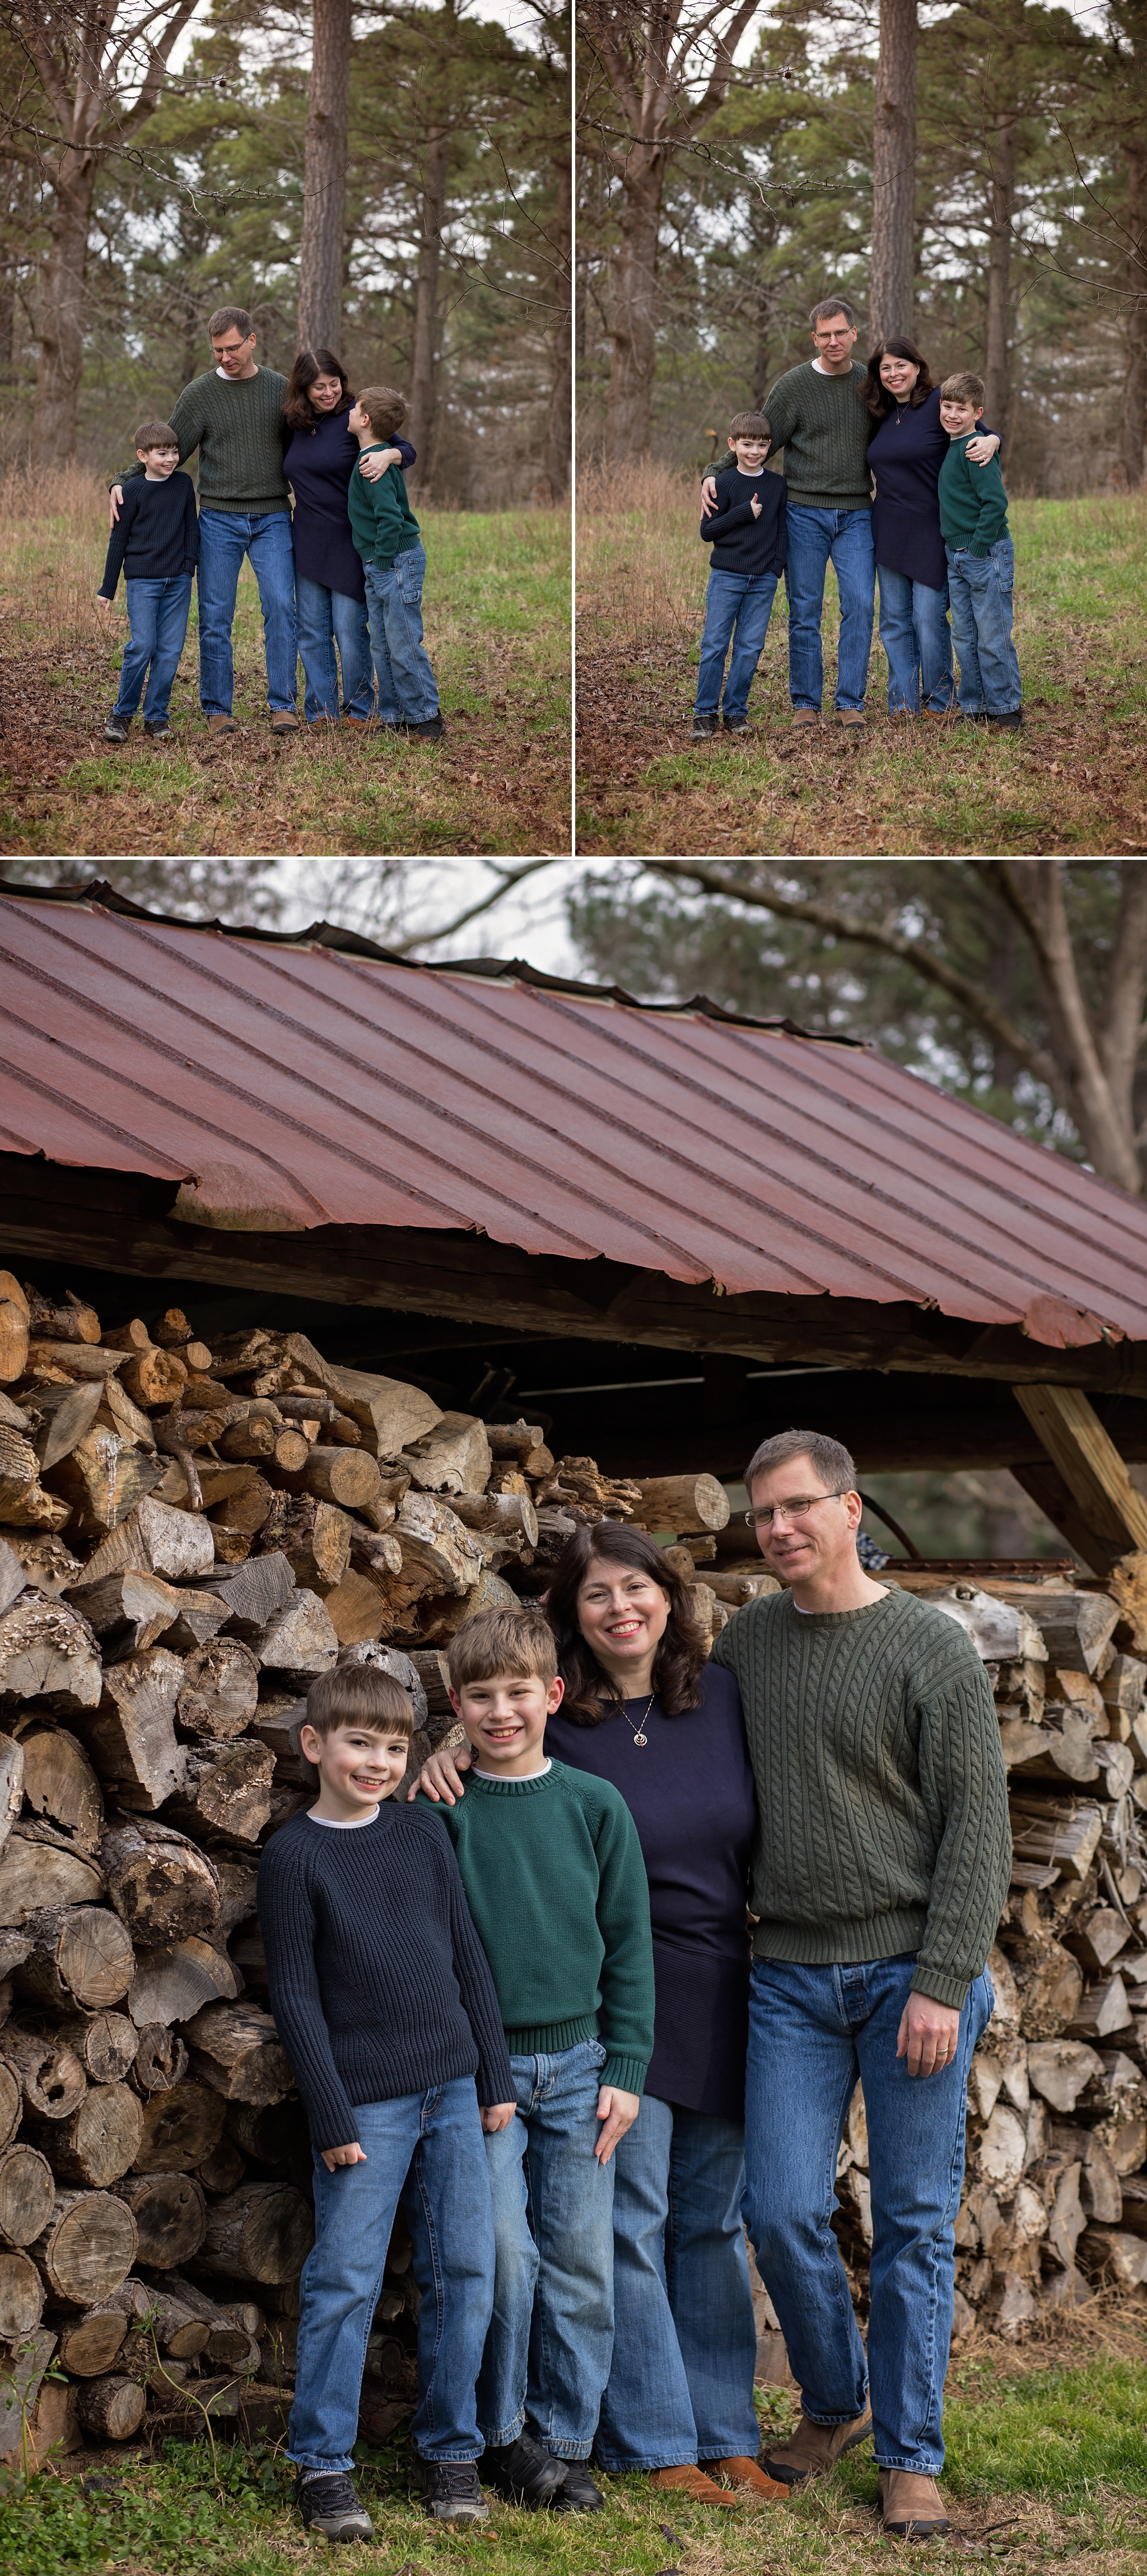 Beautiful family portrait is captured by Sanford NC photographer.